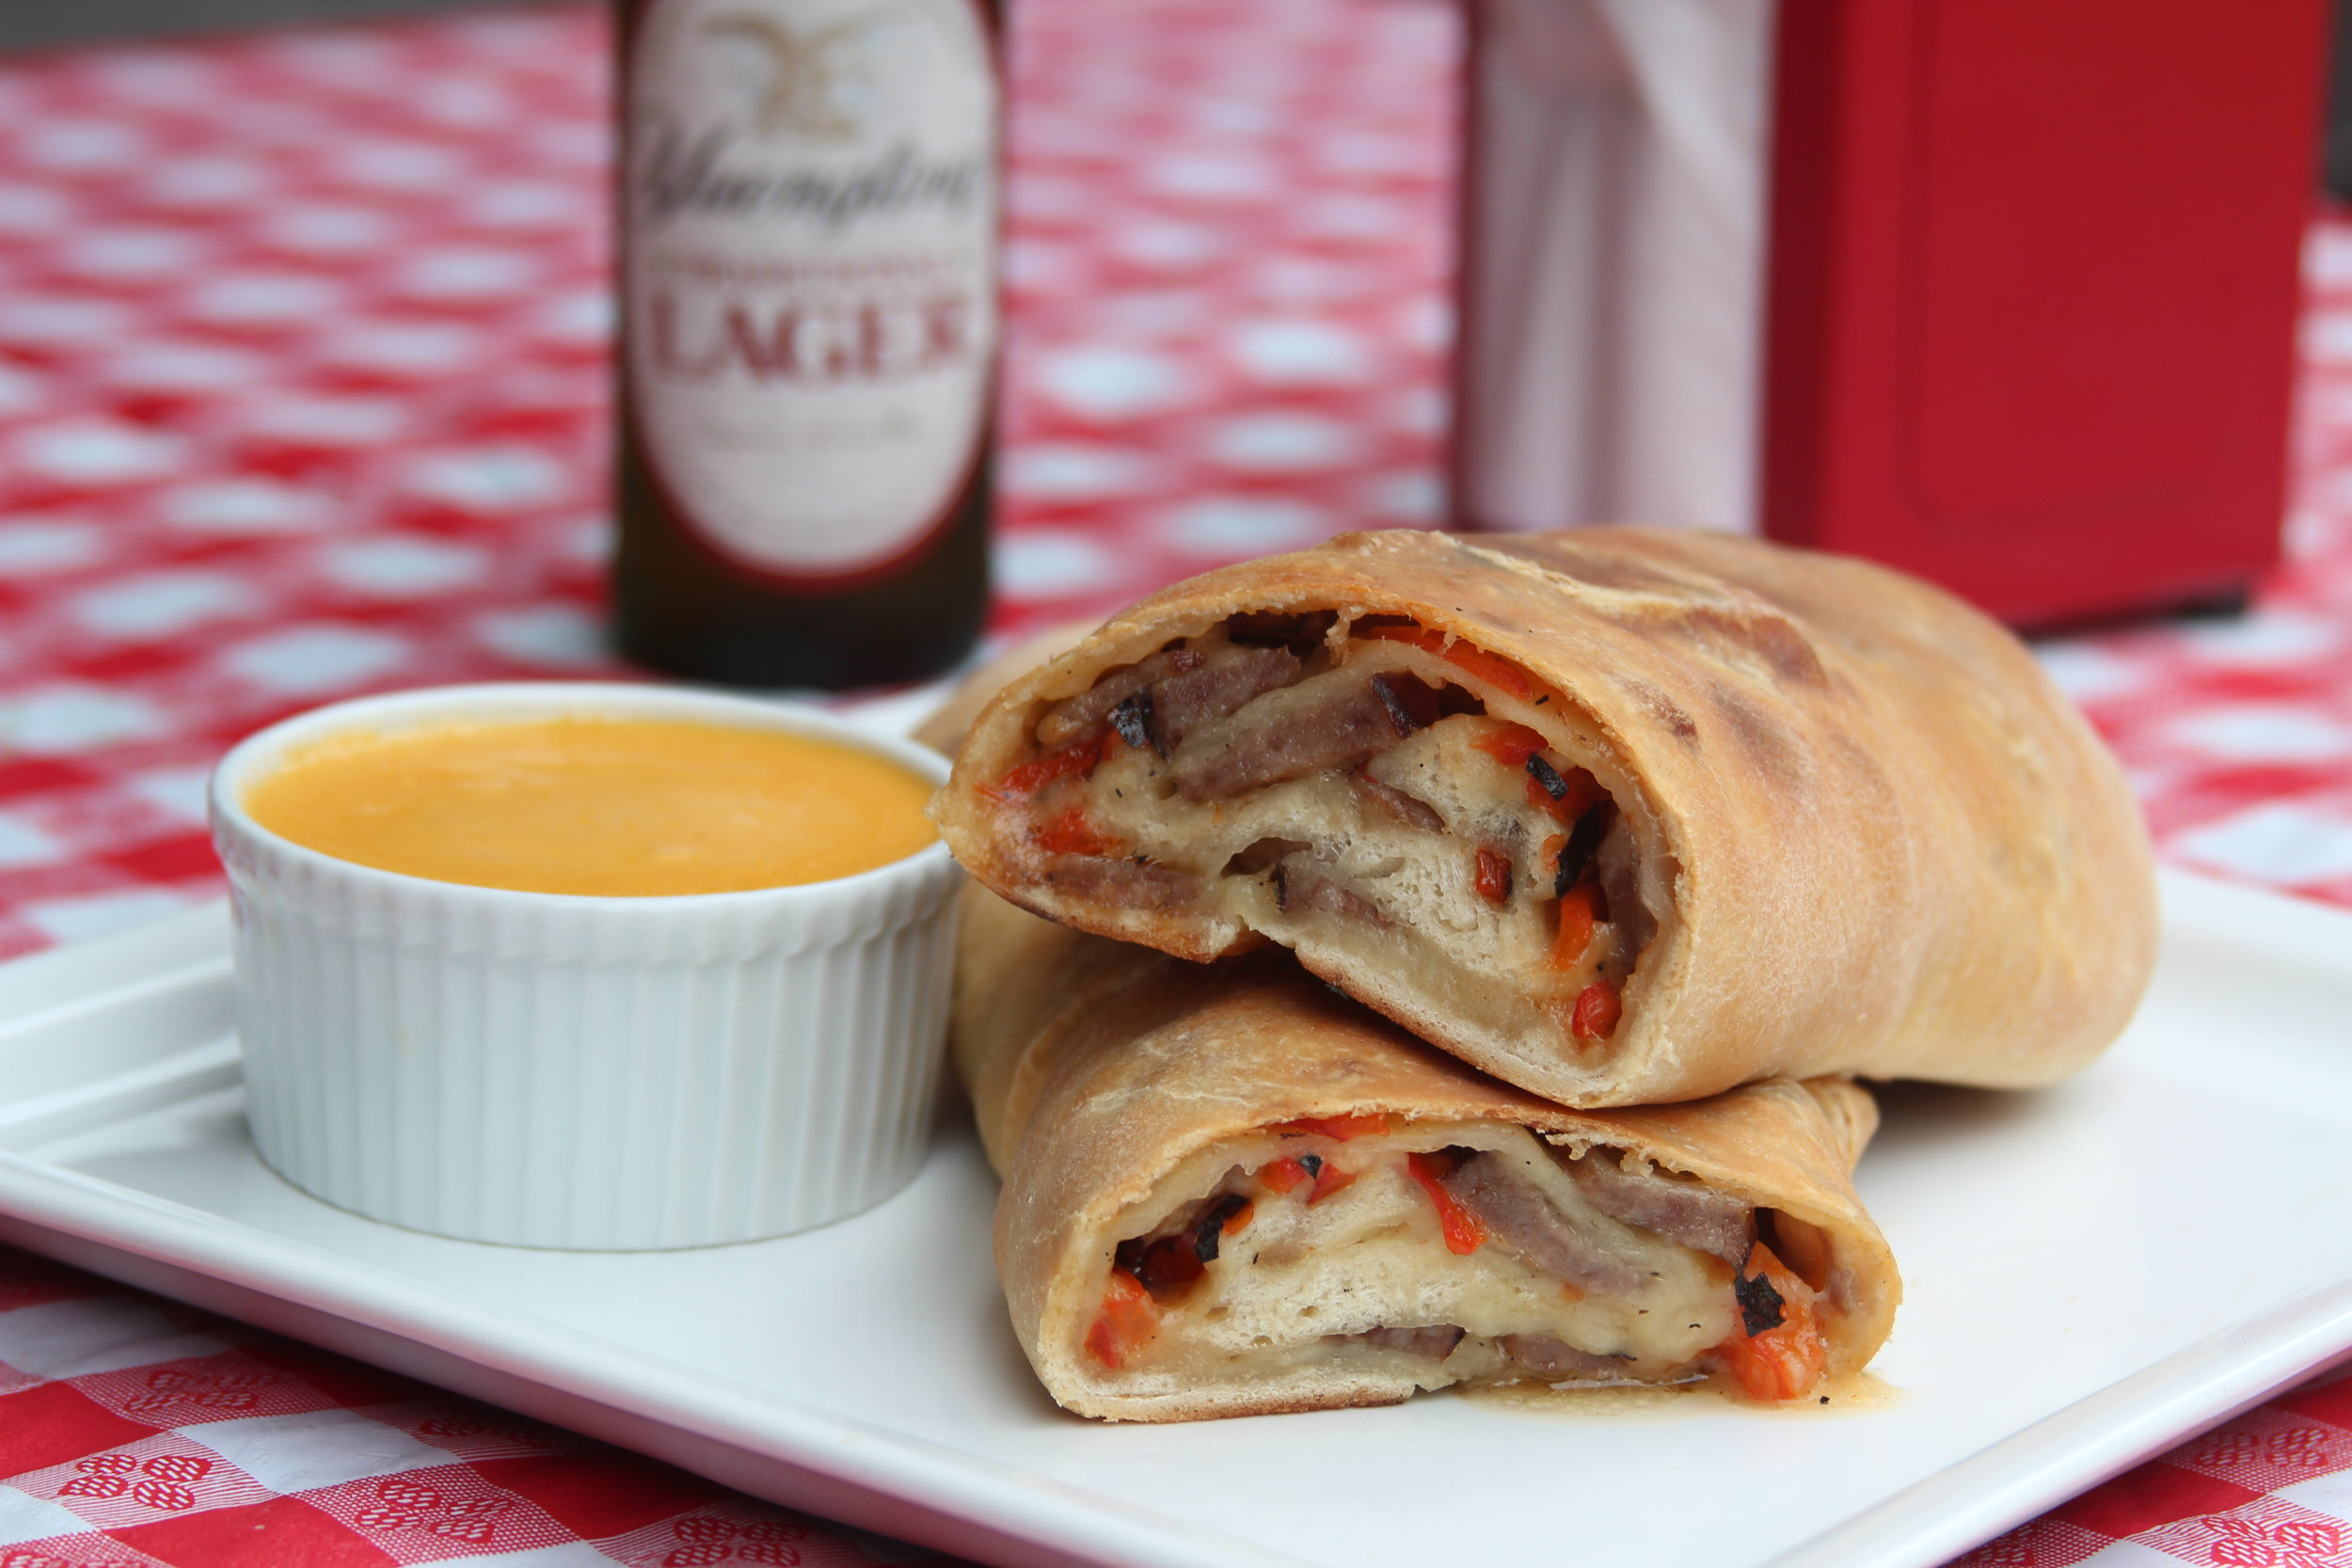 Bratwurst and Charred Pepper Stromboli with Yuengling Lager Cheese Sauce